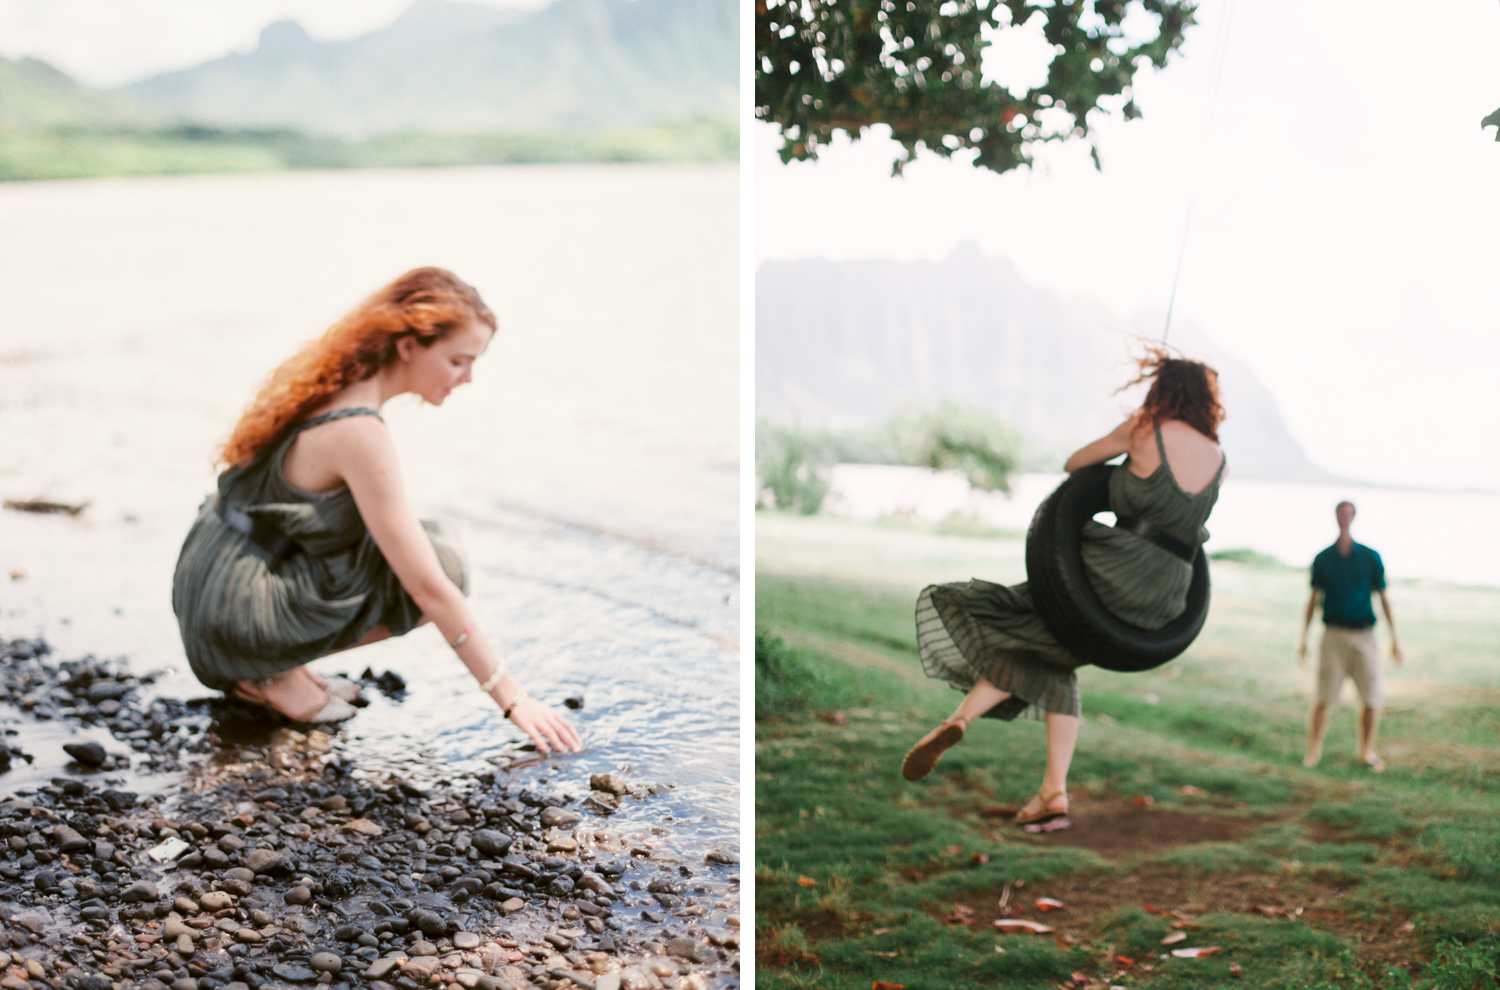 kateweinsteinphoto_hawaii_honolulu_film_wedding_phtoographer_tire_swing_engagement.jpg